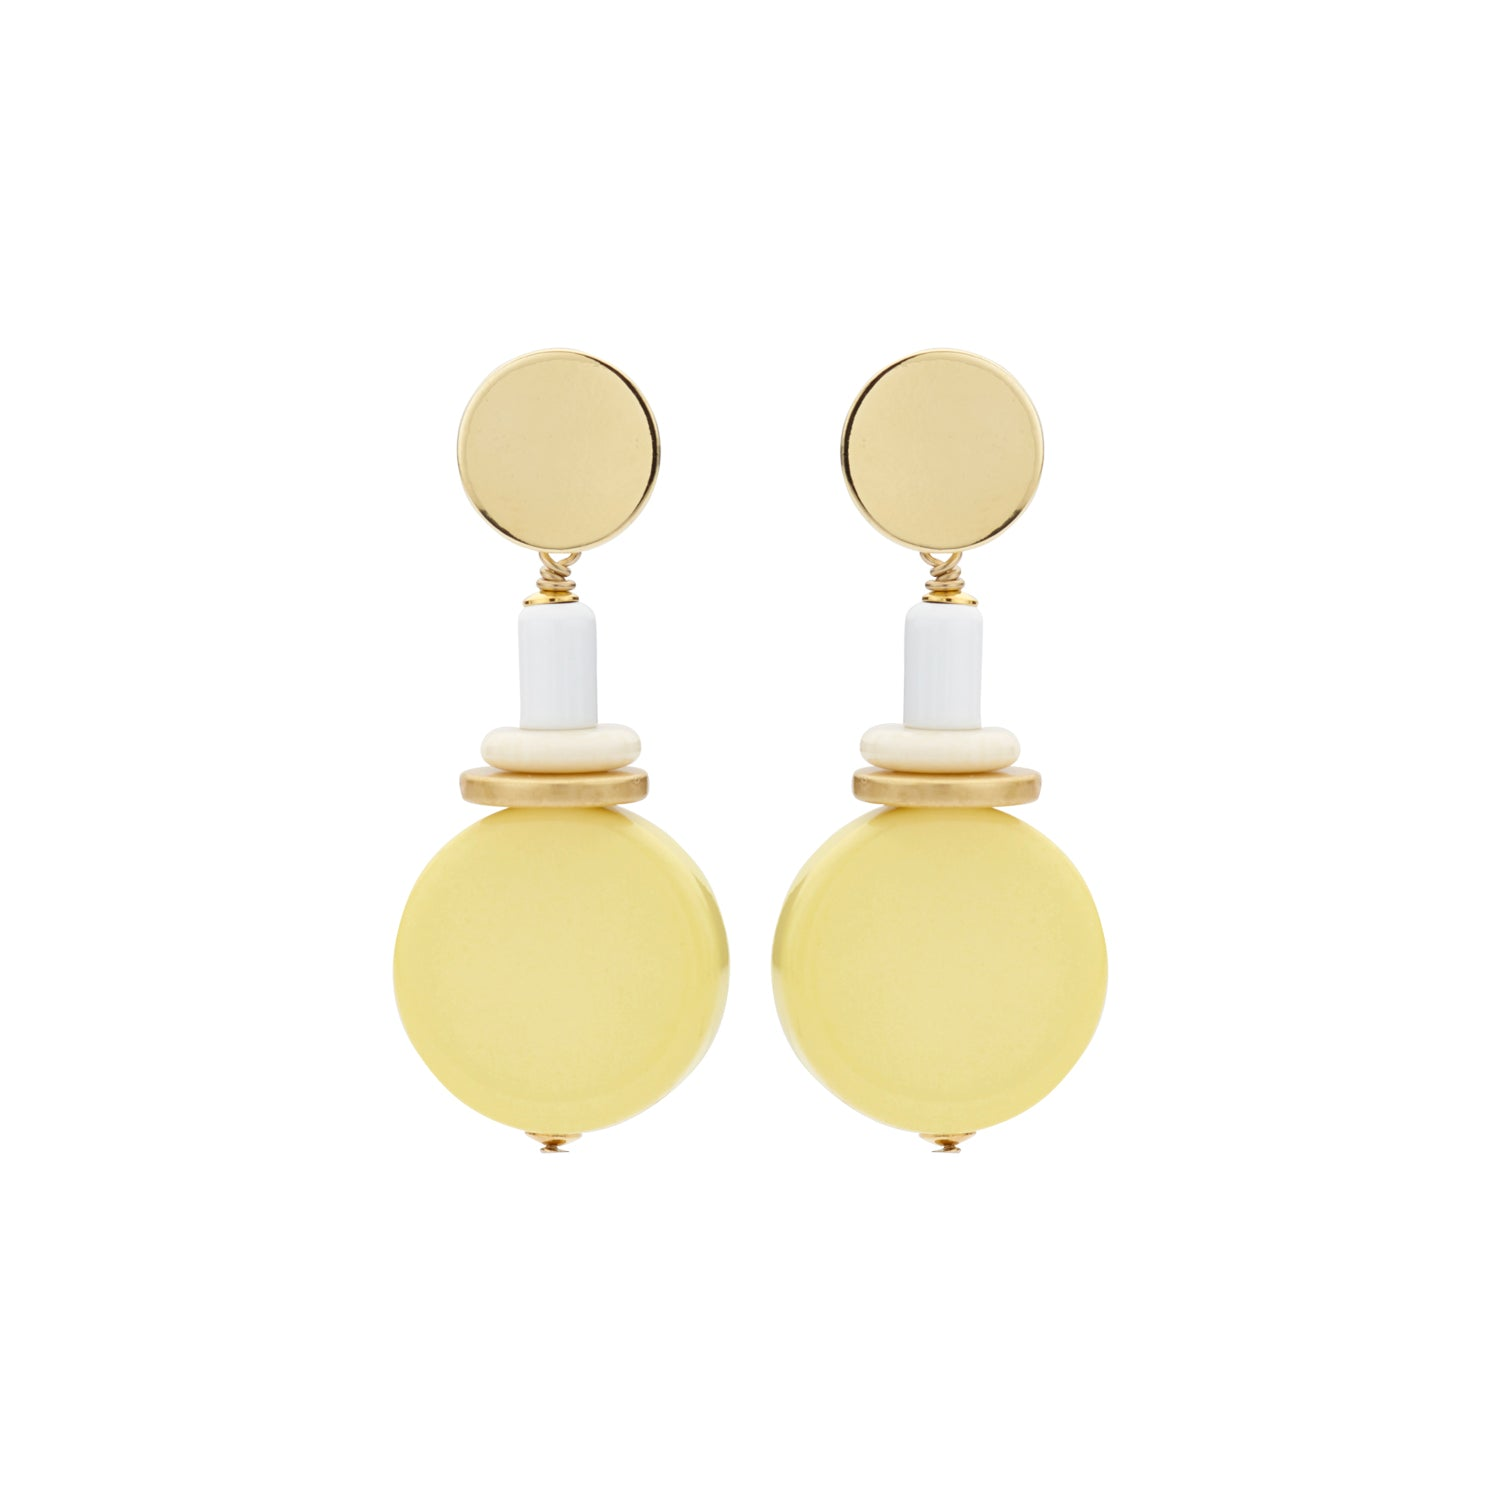 Naomi disk flat yellow earrings - Souvenirs de Pomme